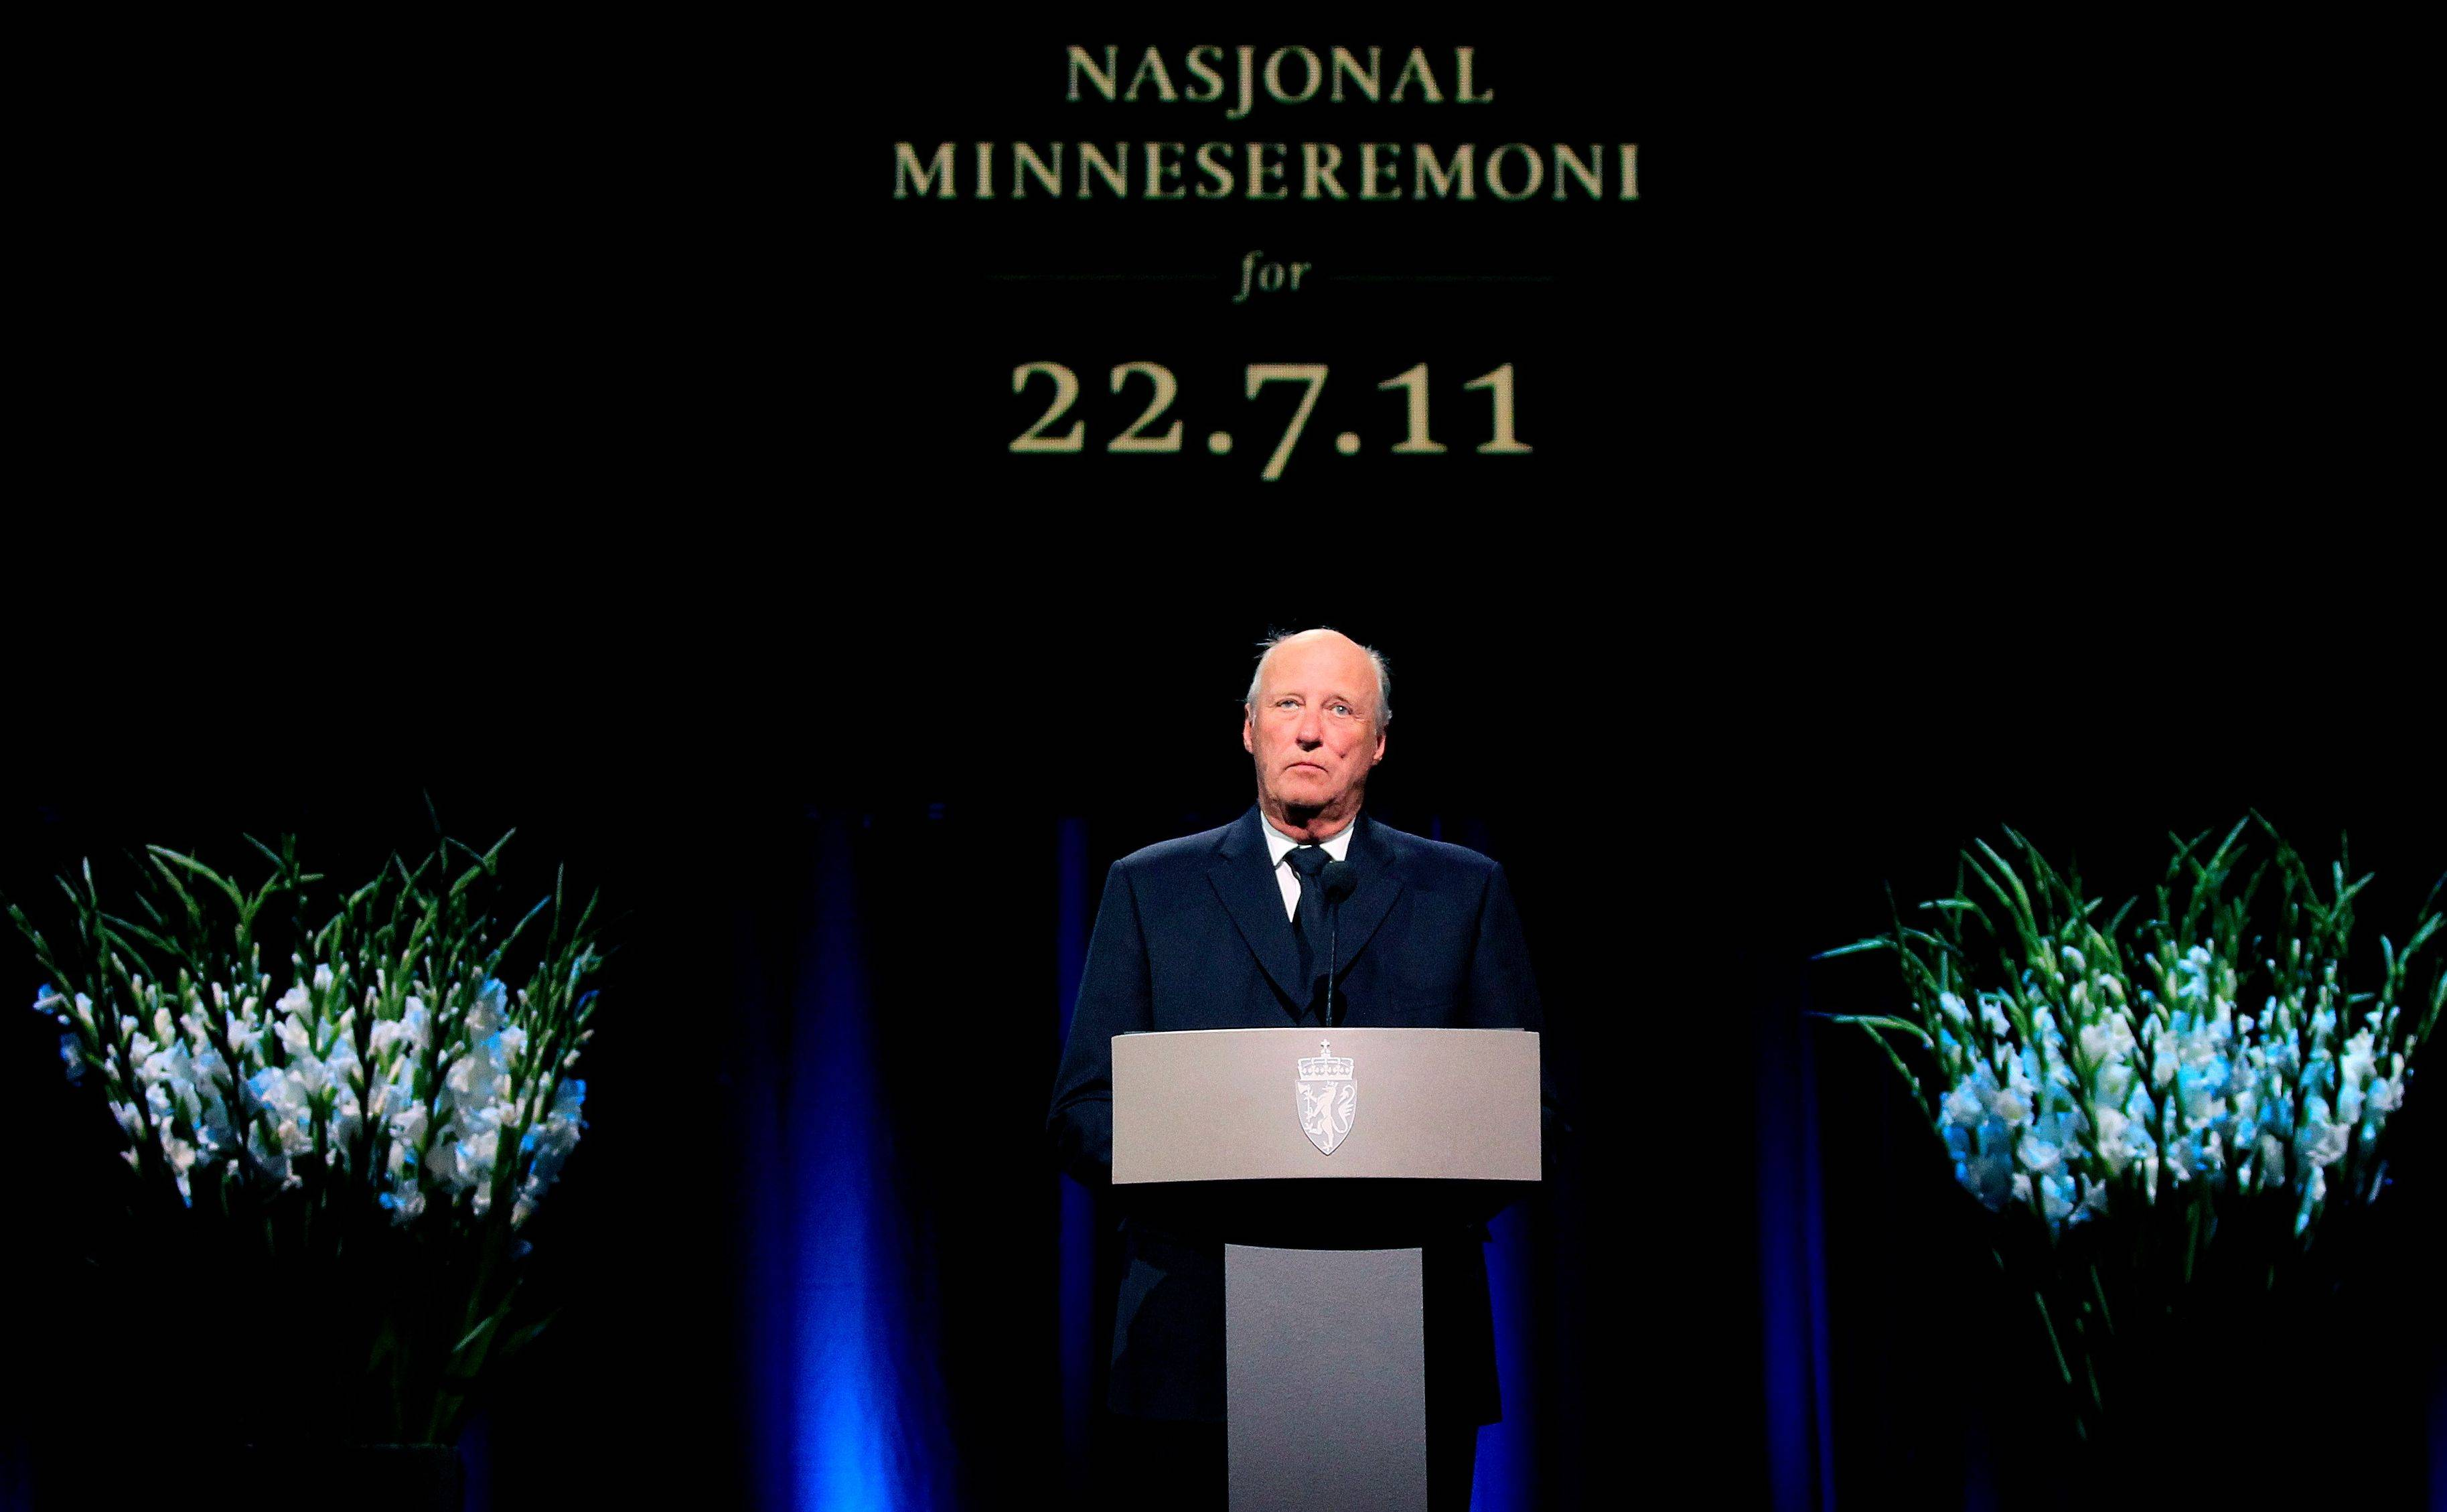 Norway�s King Harald speaks Sunday during the national memorial ceremony in Oslo in remembrance of the victims of the two July 22 attacks that killed 77 people in Oslo and on Utoya island.